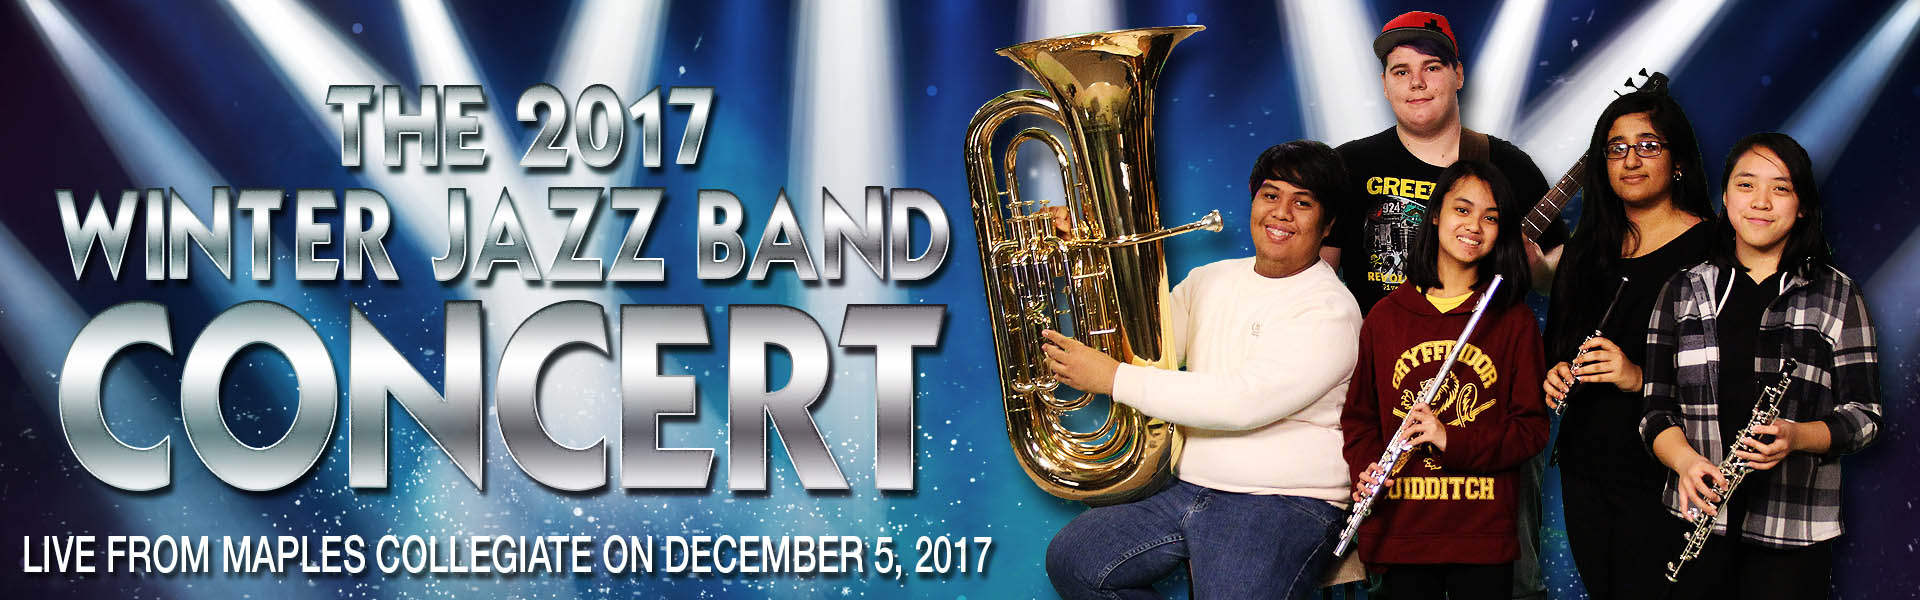 2017 Winter Jazz Band